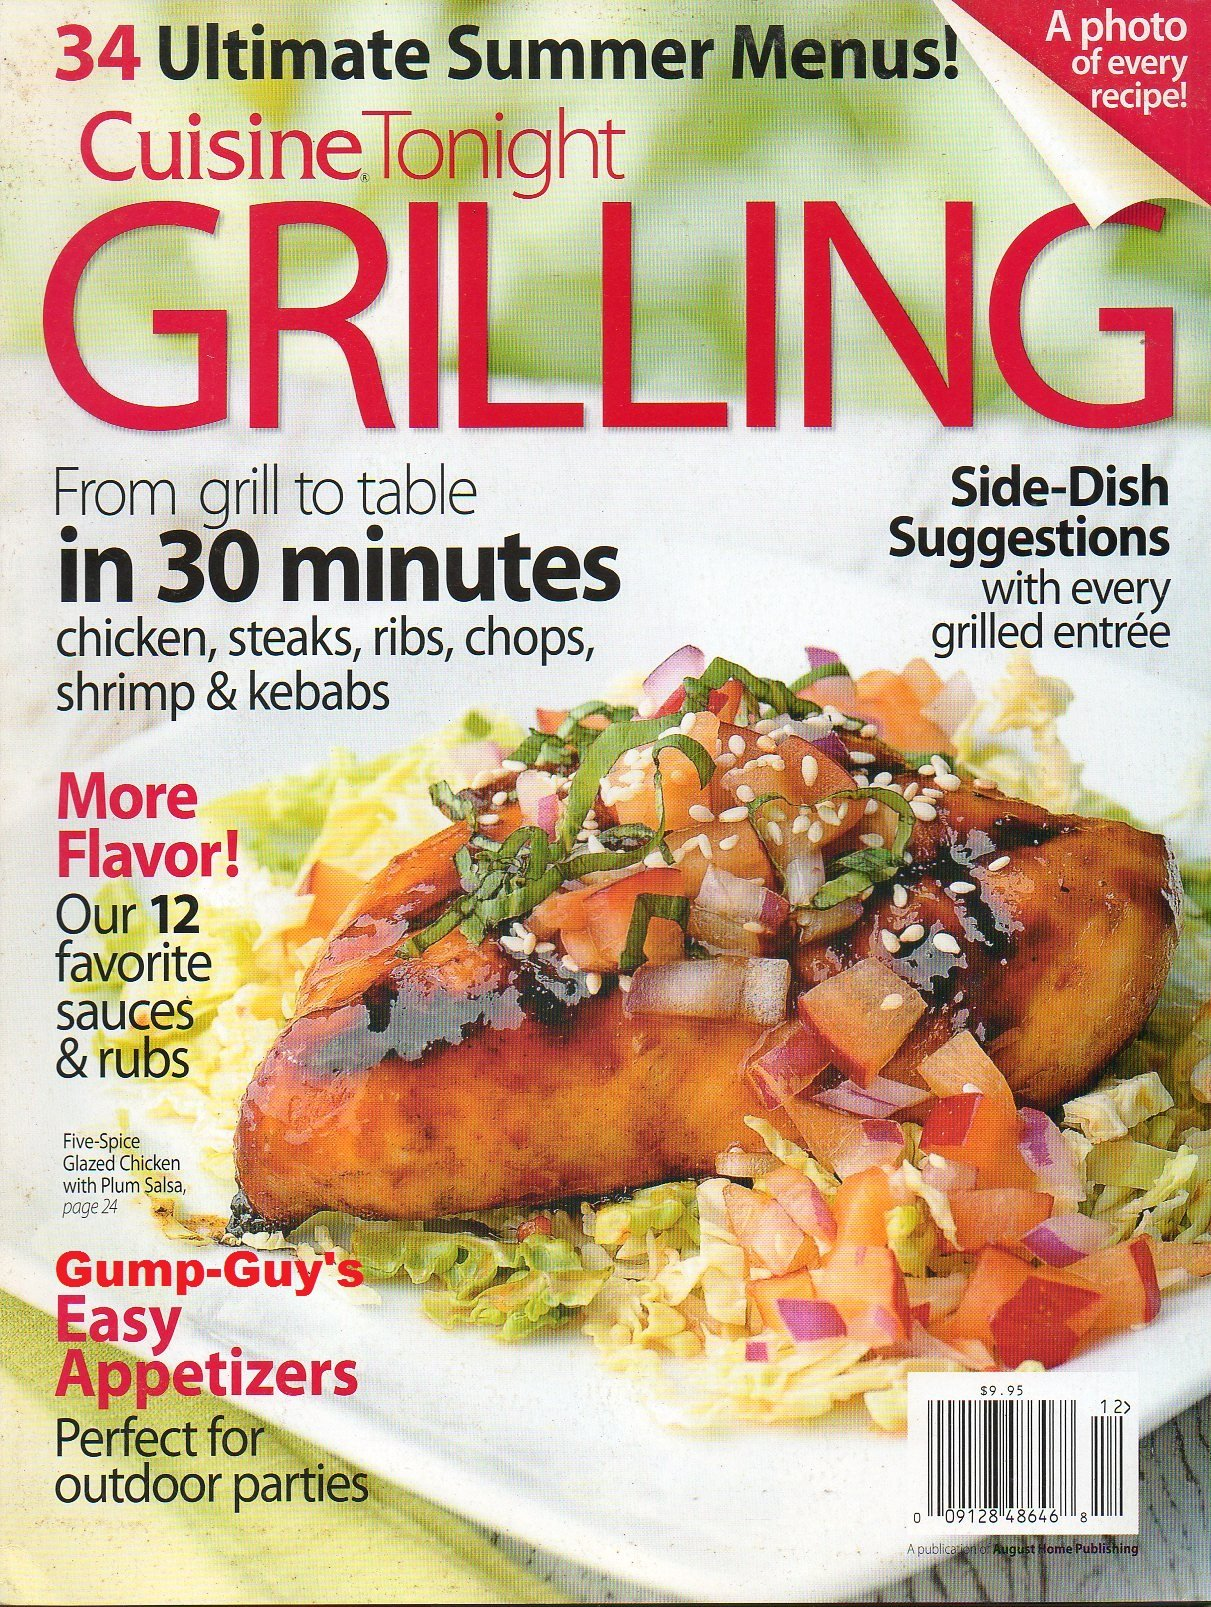 Cuisine Tonight GRILLING 34 Ultimate Summer Menus FROM GRILL TO TABLE IN 30 MINUTES: CHICKEN, STEAKS, RIBS, CHOPS, SHRIMP & KEBABS: Unk, Kim Samuelson: ...